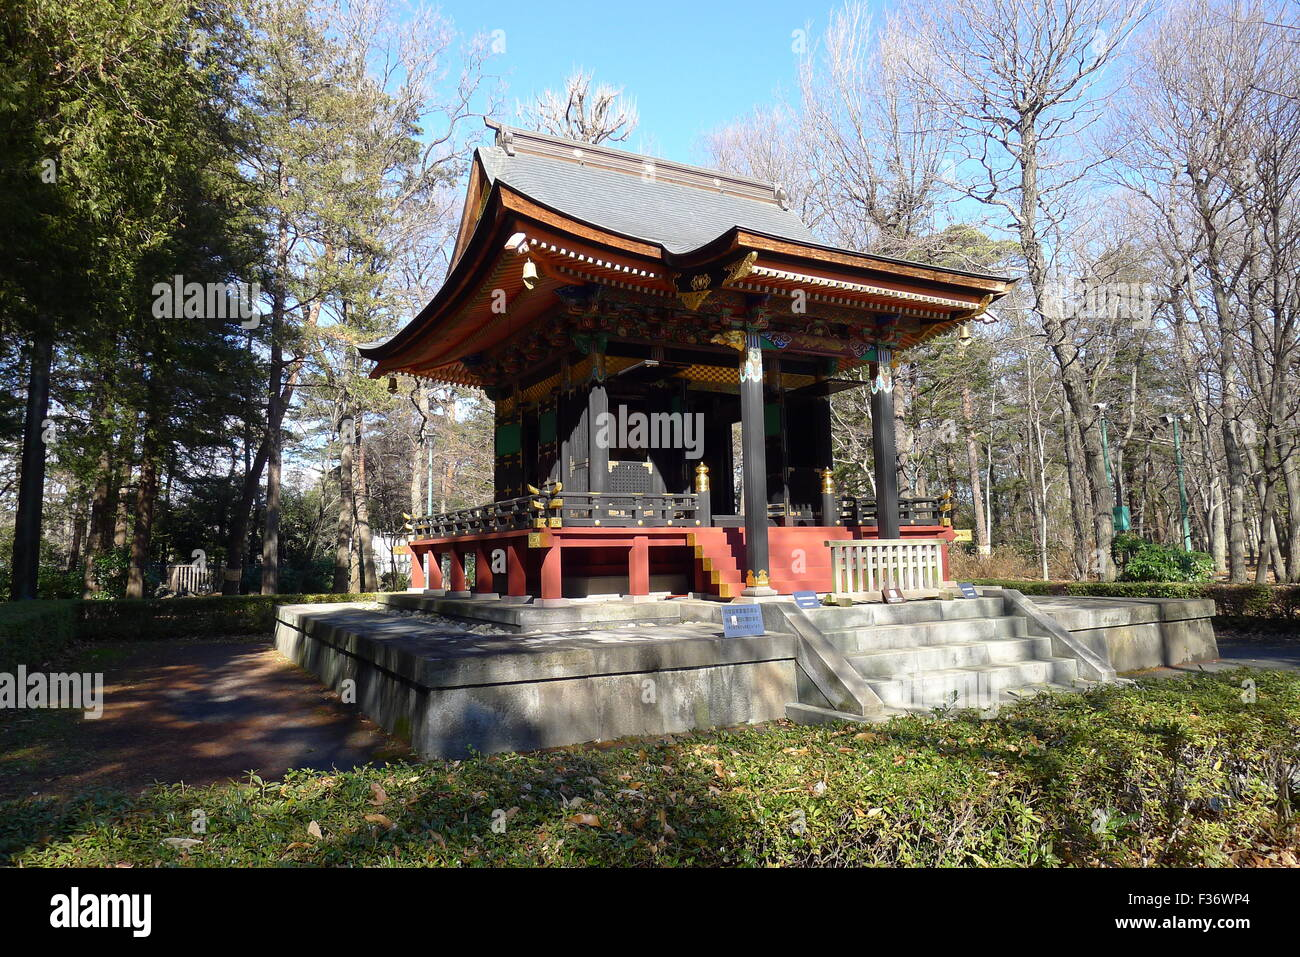 Jisho-in Mausoleum (Otama-ya) at Edo-Tokyo Open Air Architectural Museum - Stock Image